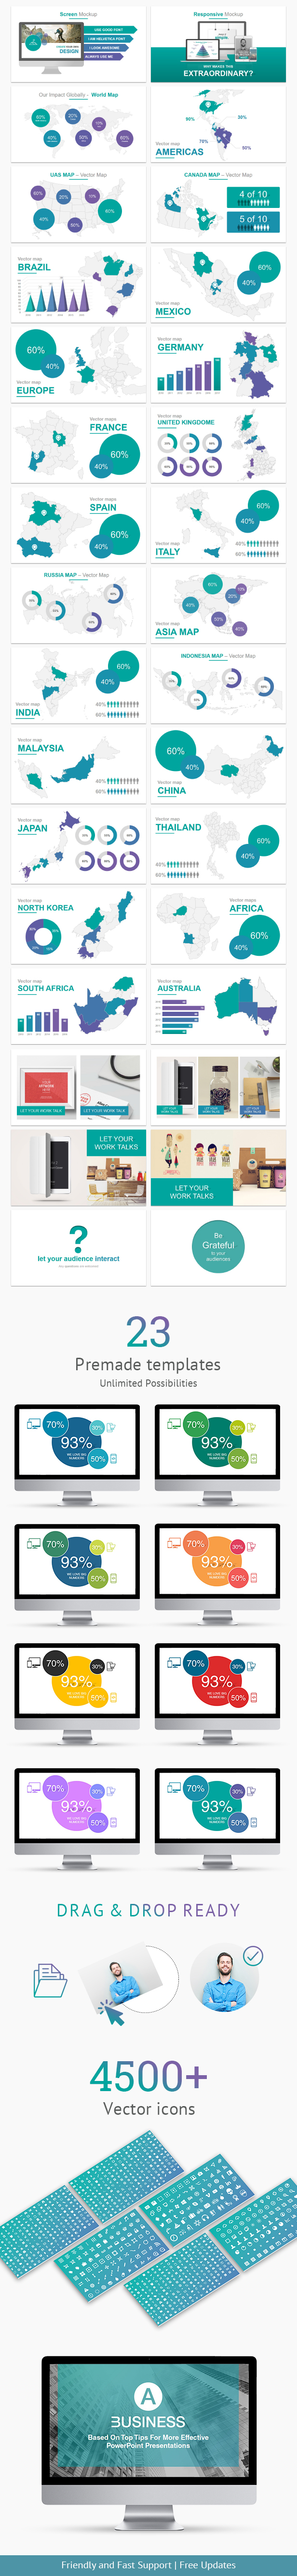 A Business - Multipurpose PowerPoint Presentation Template - 1